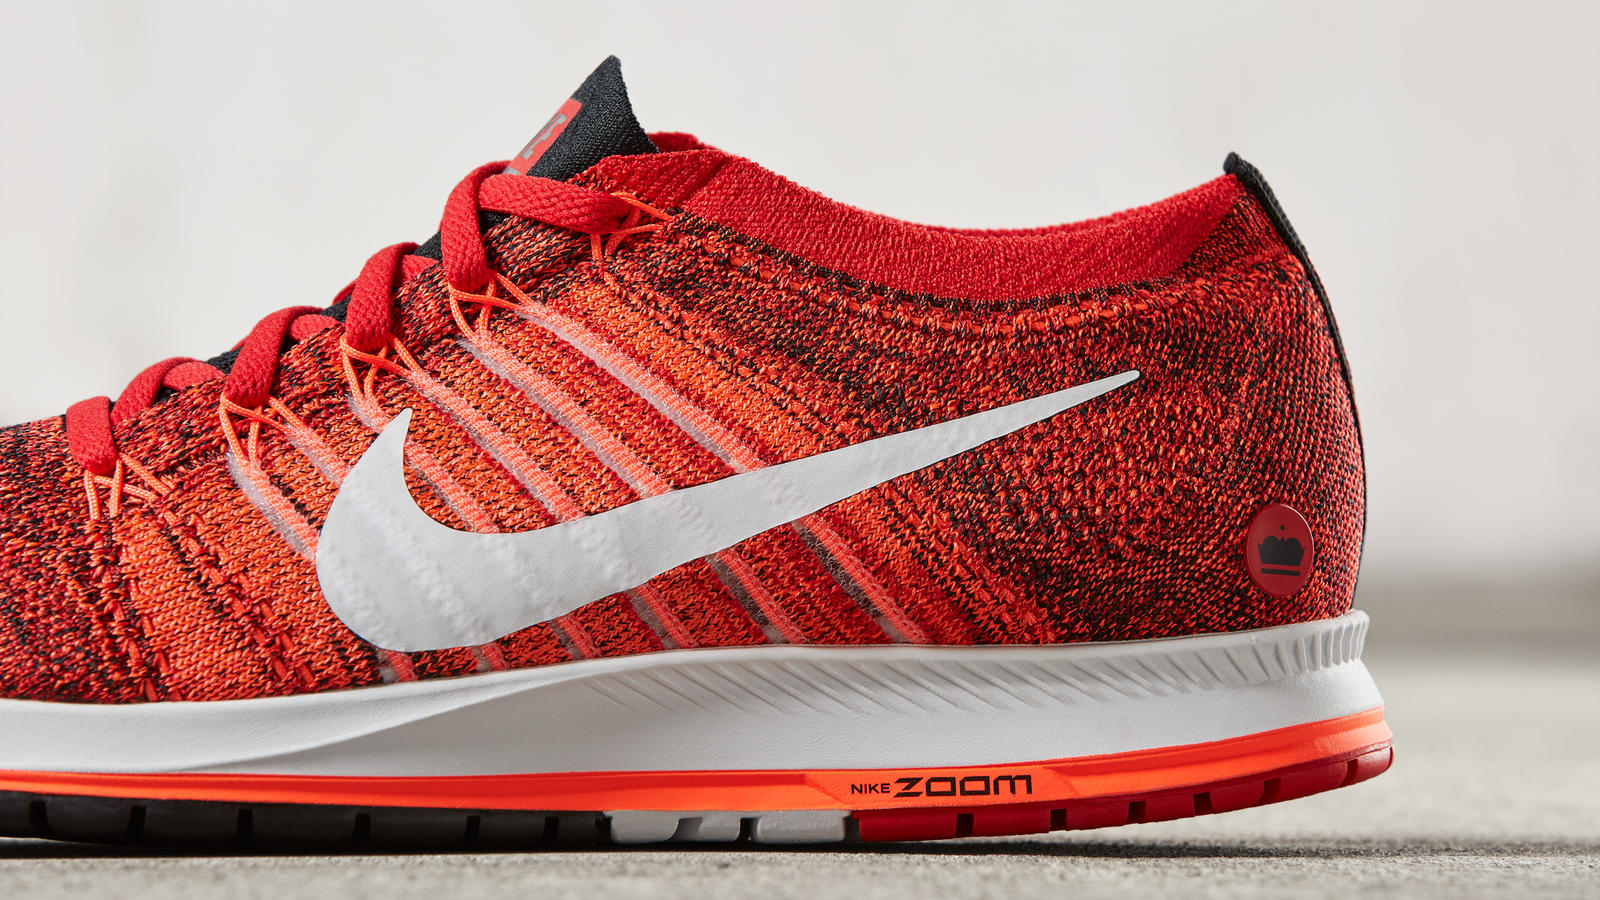 Nike Zoom Flyknit Streak (London) 2